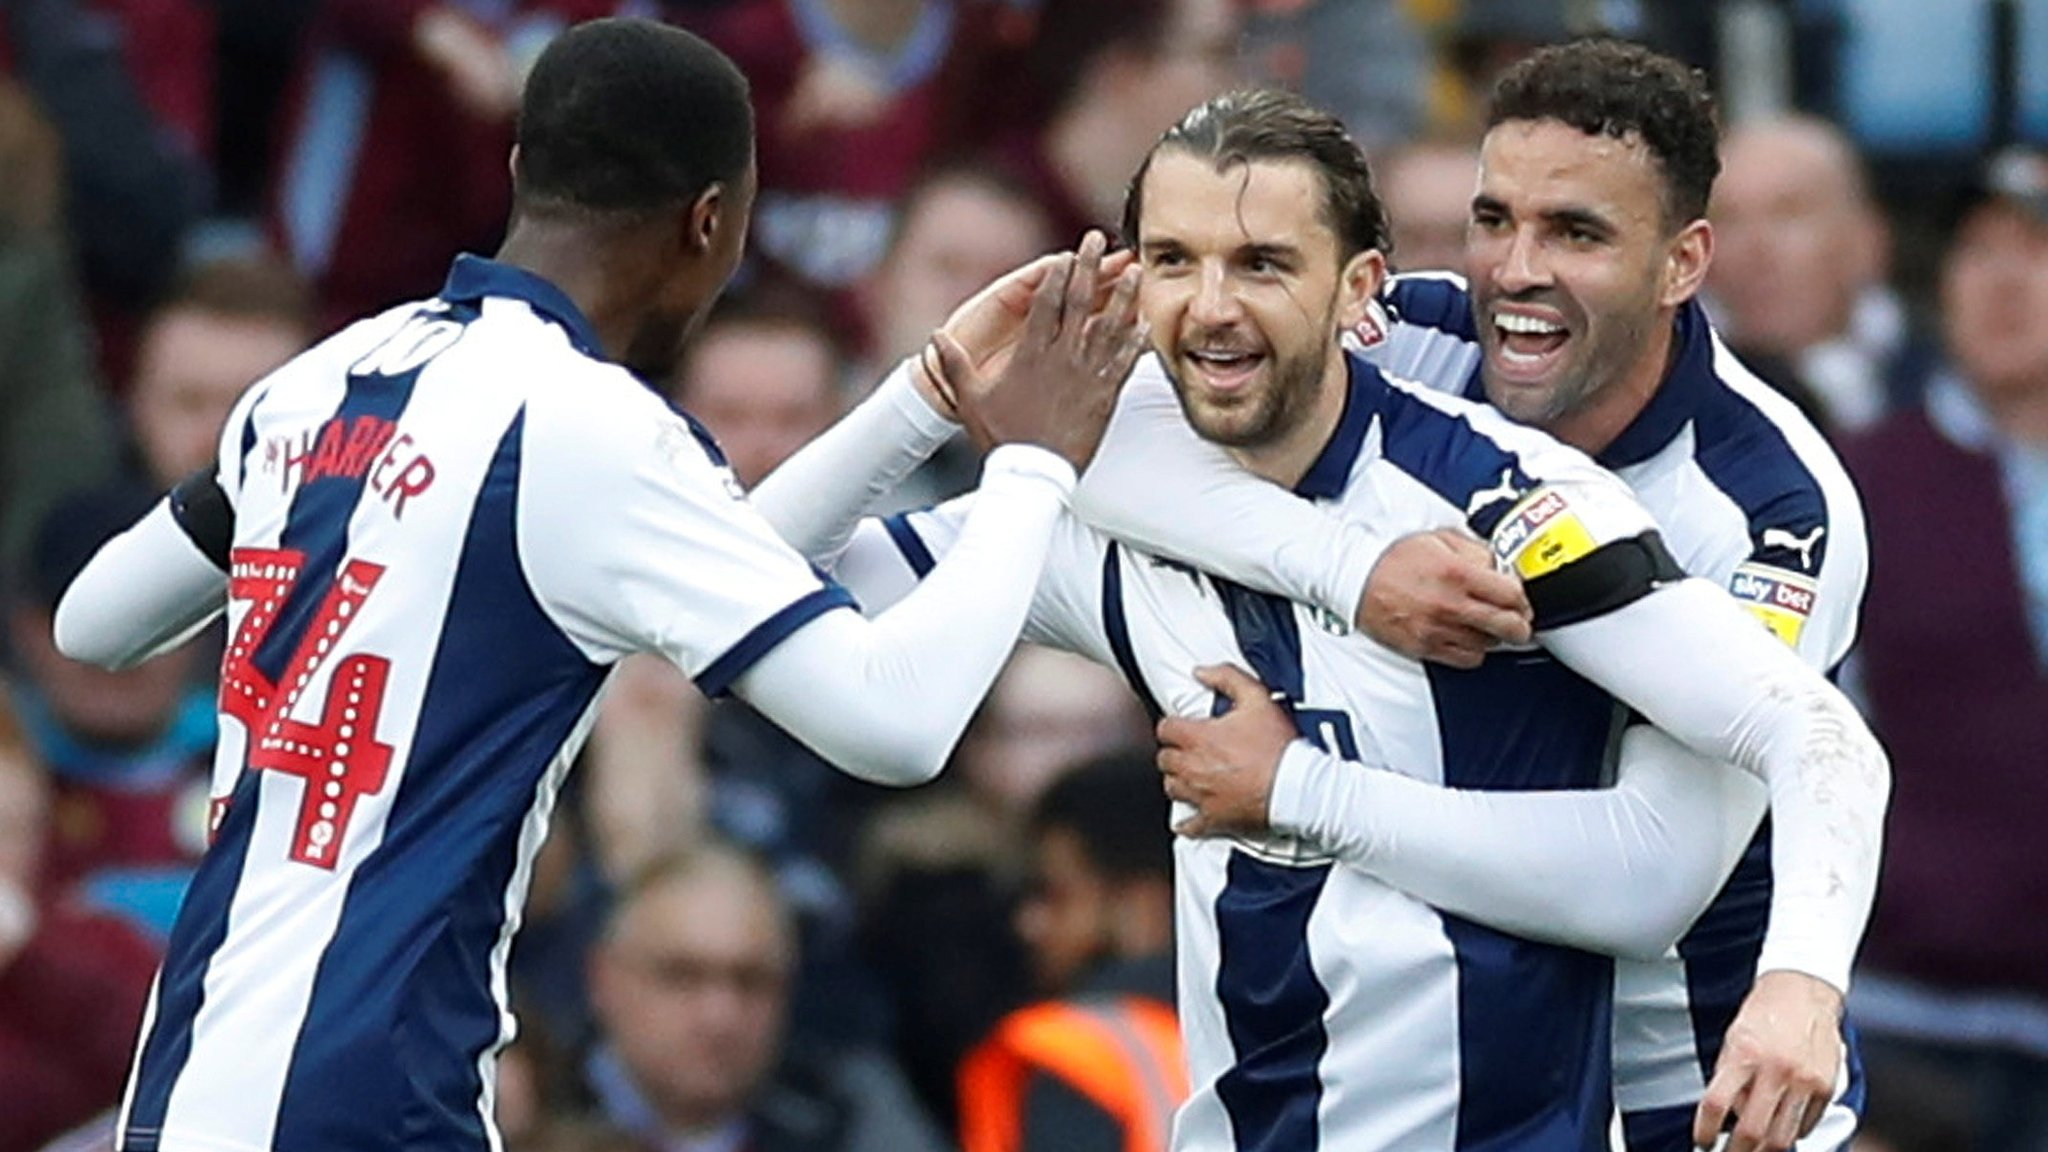 Aston Villa 0-2 West Brom: Two goals in four minutes seal derby win for visitors